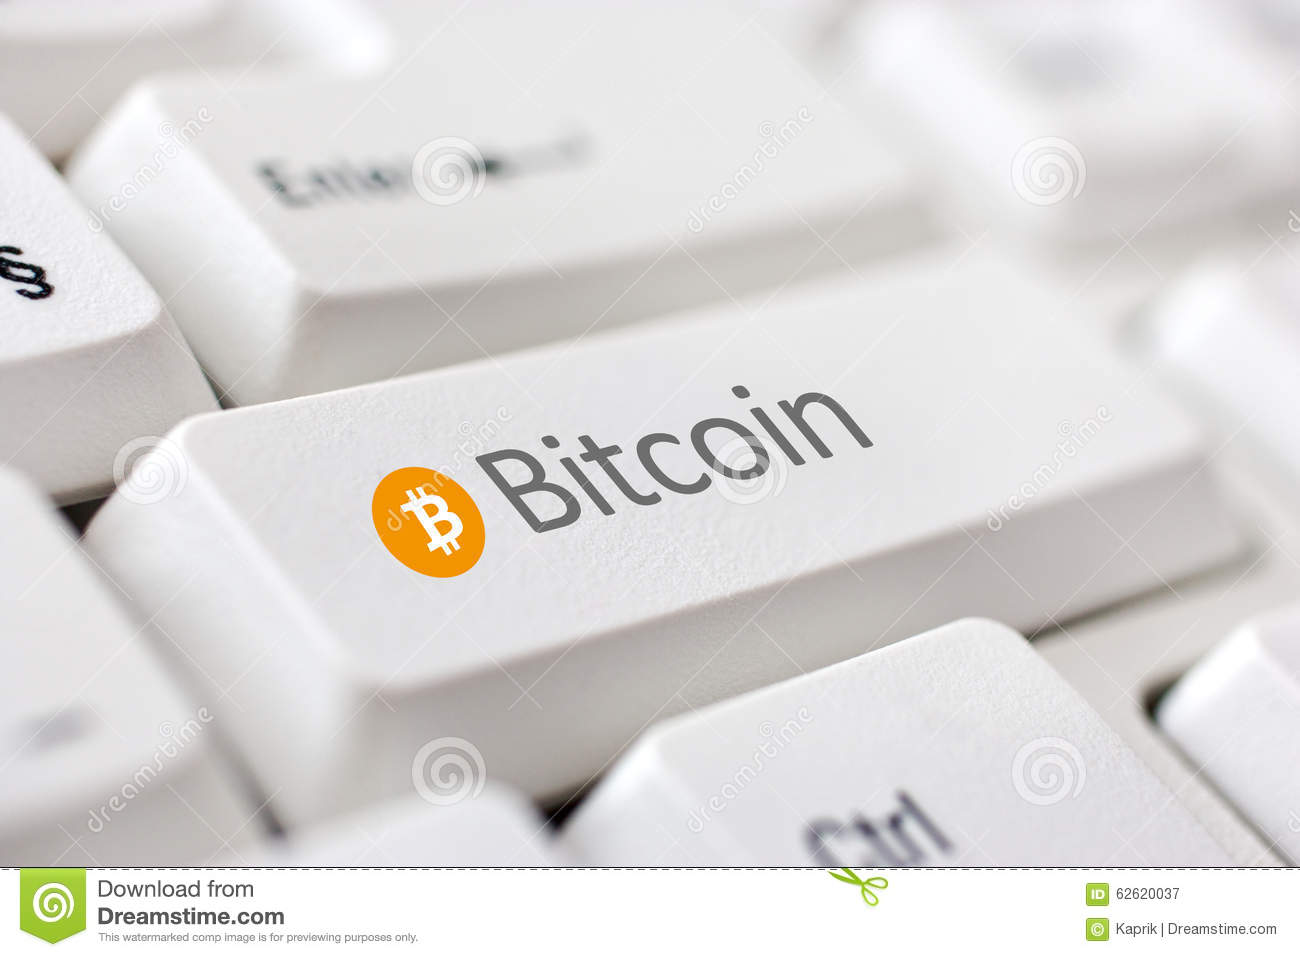 Digital Currency Bitcoin Stock Photo - Image: 62620037